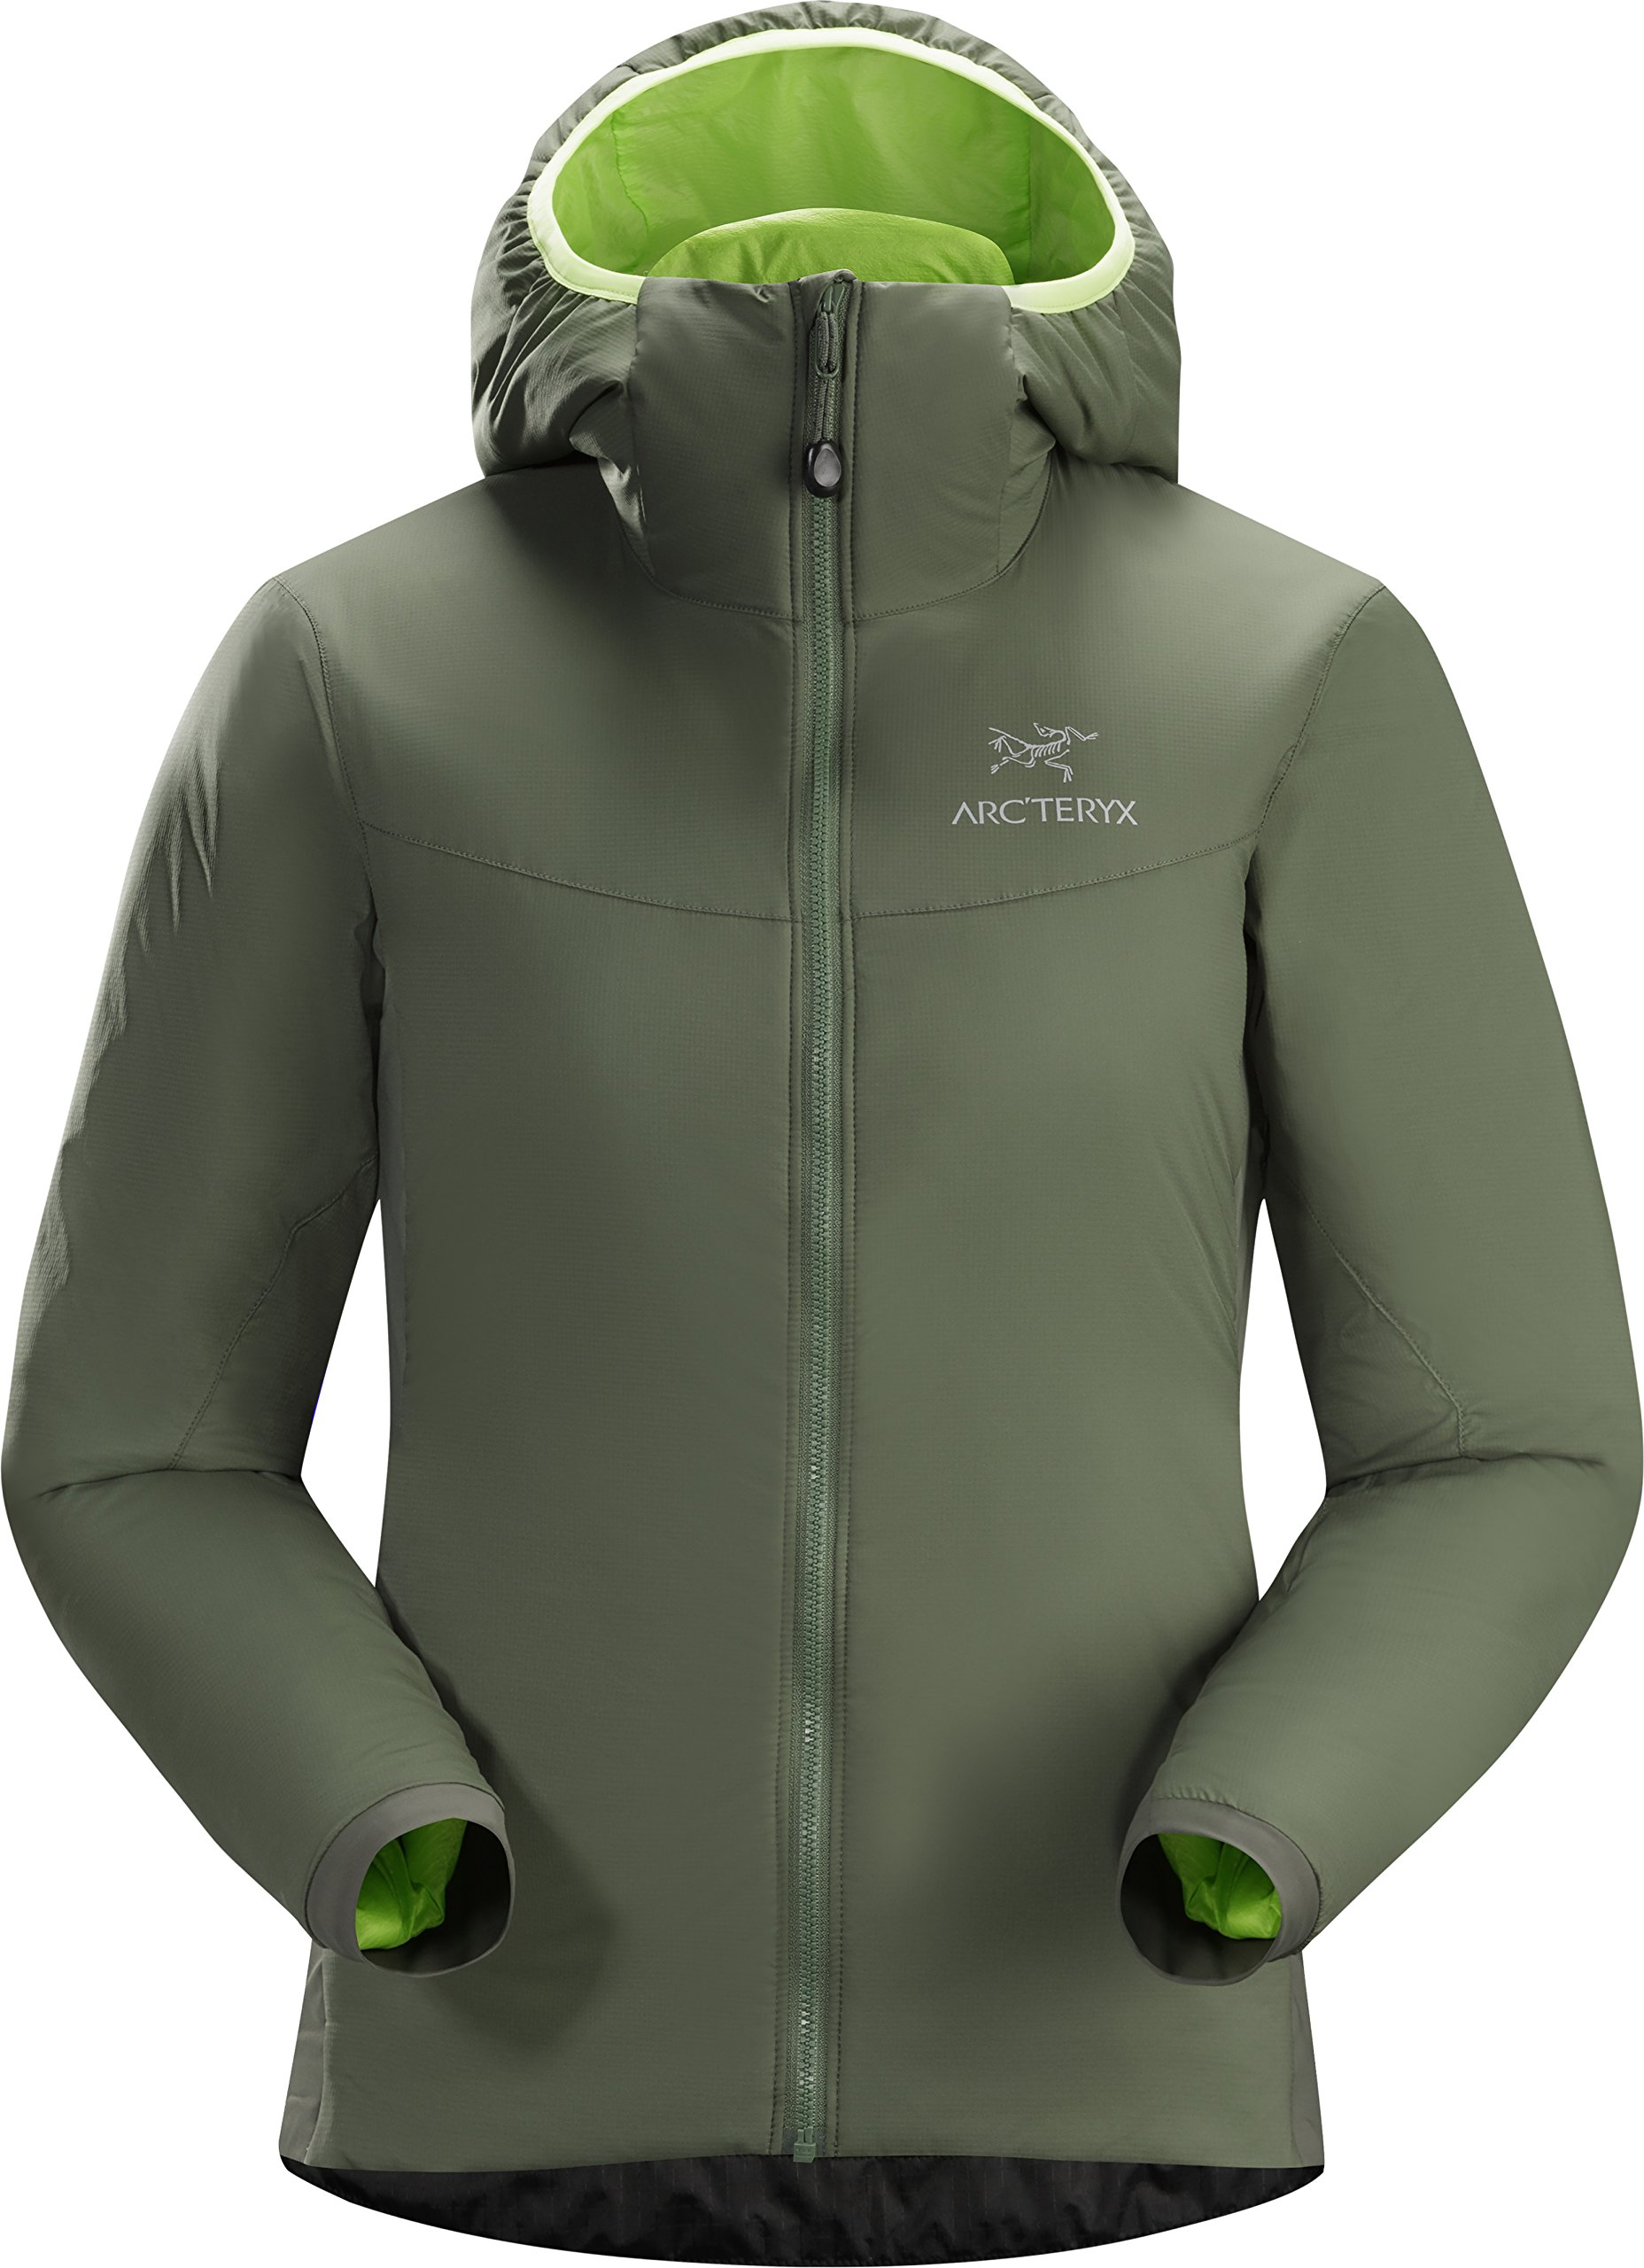 Arc'teryx Atom LT Hoody Women's (Shorepine, Medium)